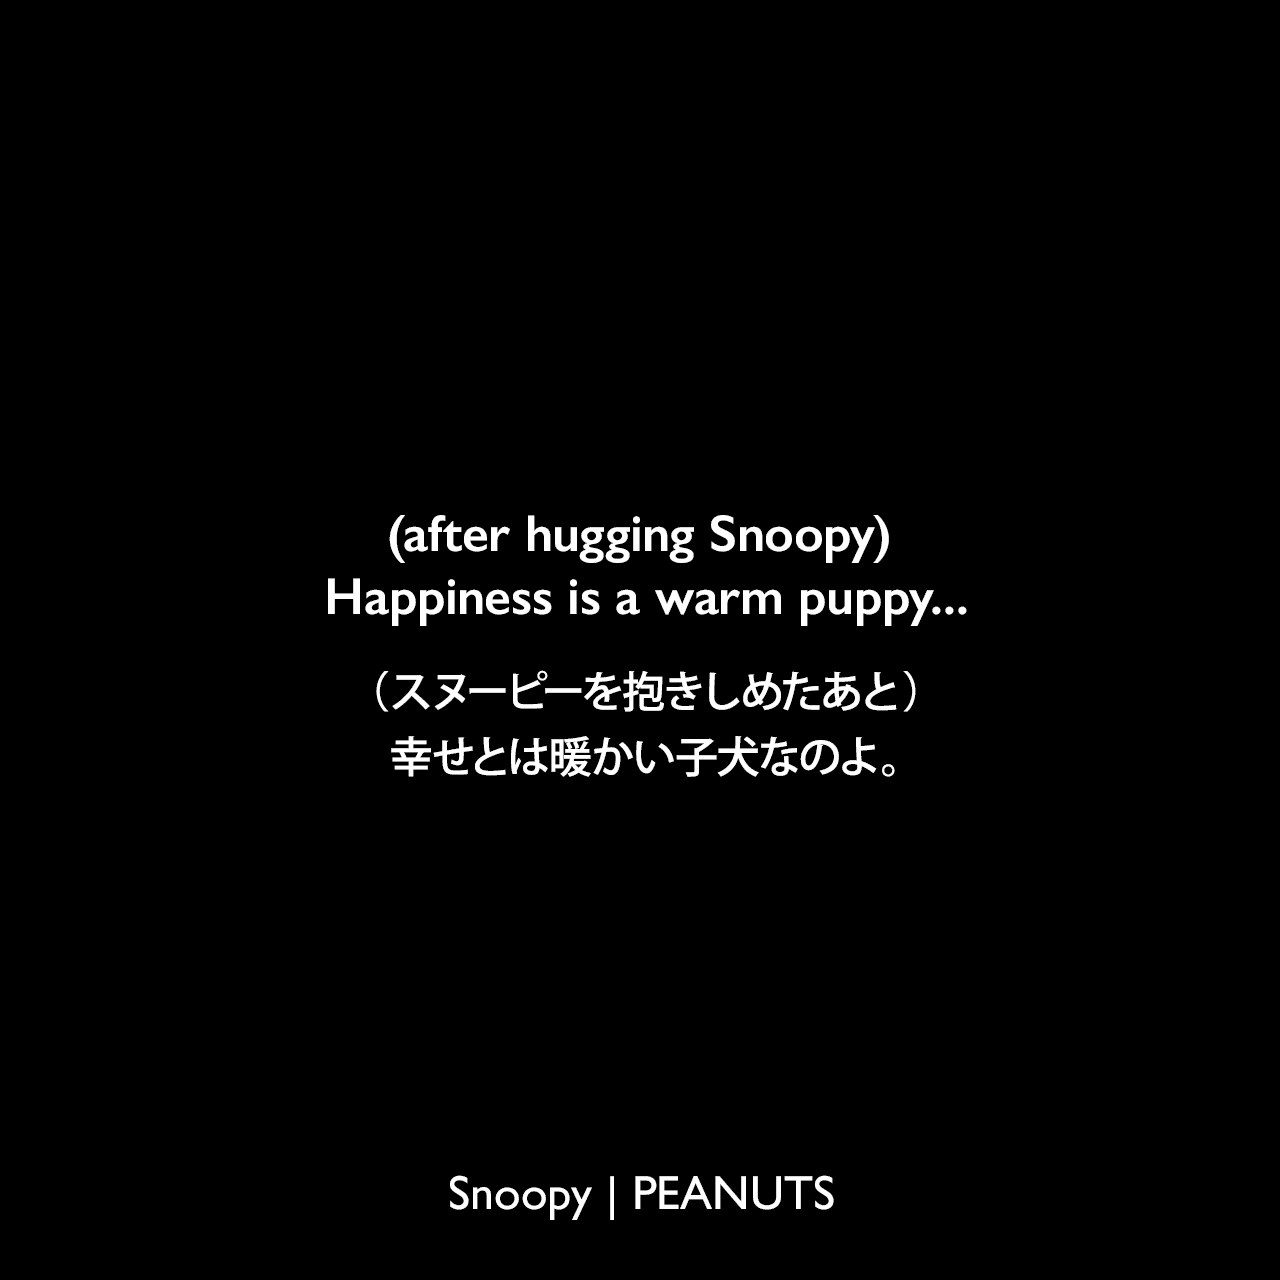 (after hugging Snoopy) Happiness is a warm puppy...(スヌーピーを抱きしめたあと)幸せとは暖かい子犬なのよ。- ルーシー (1960年4月25日のコミック)Charles Monroe Schulz